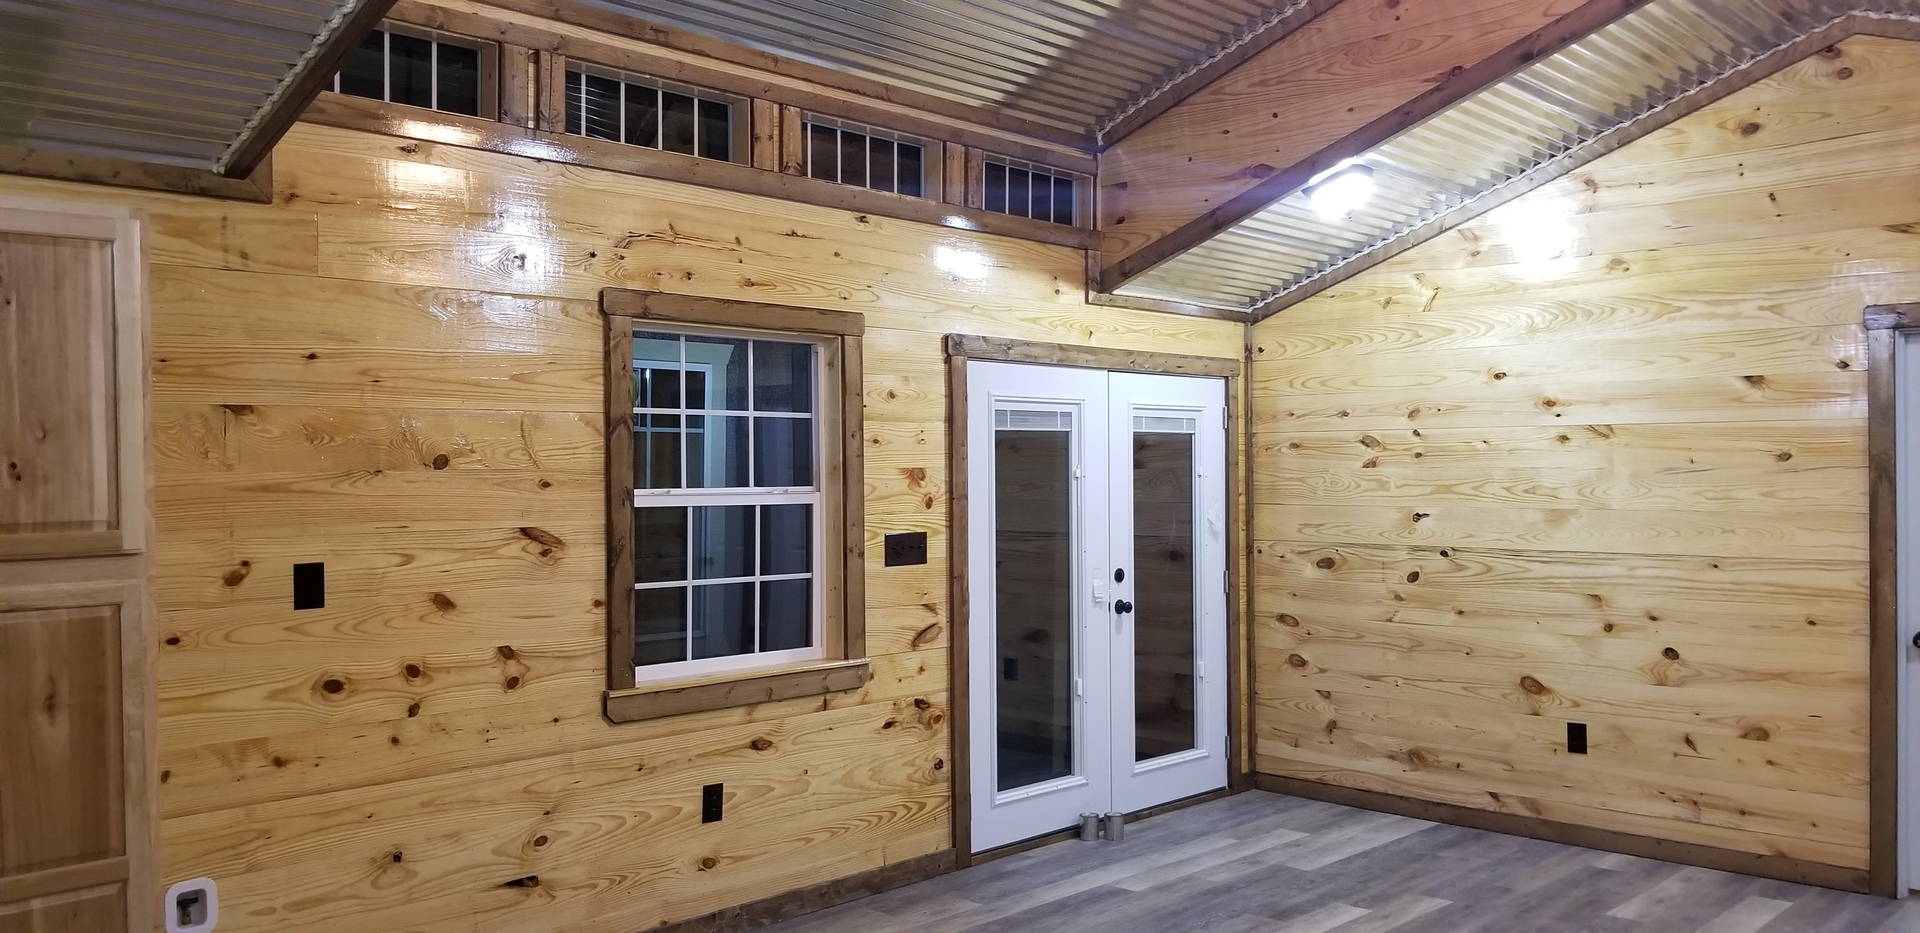 Storage Sheds Barns Cabin Shells Portable Buildings Tiny